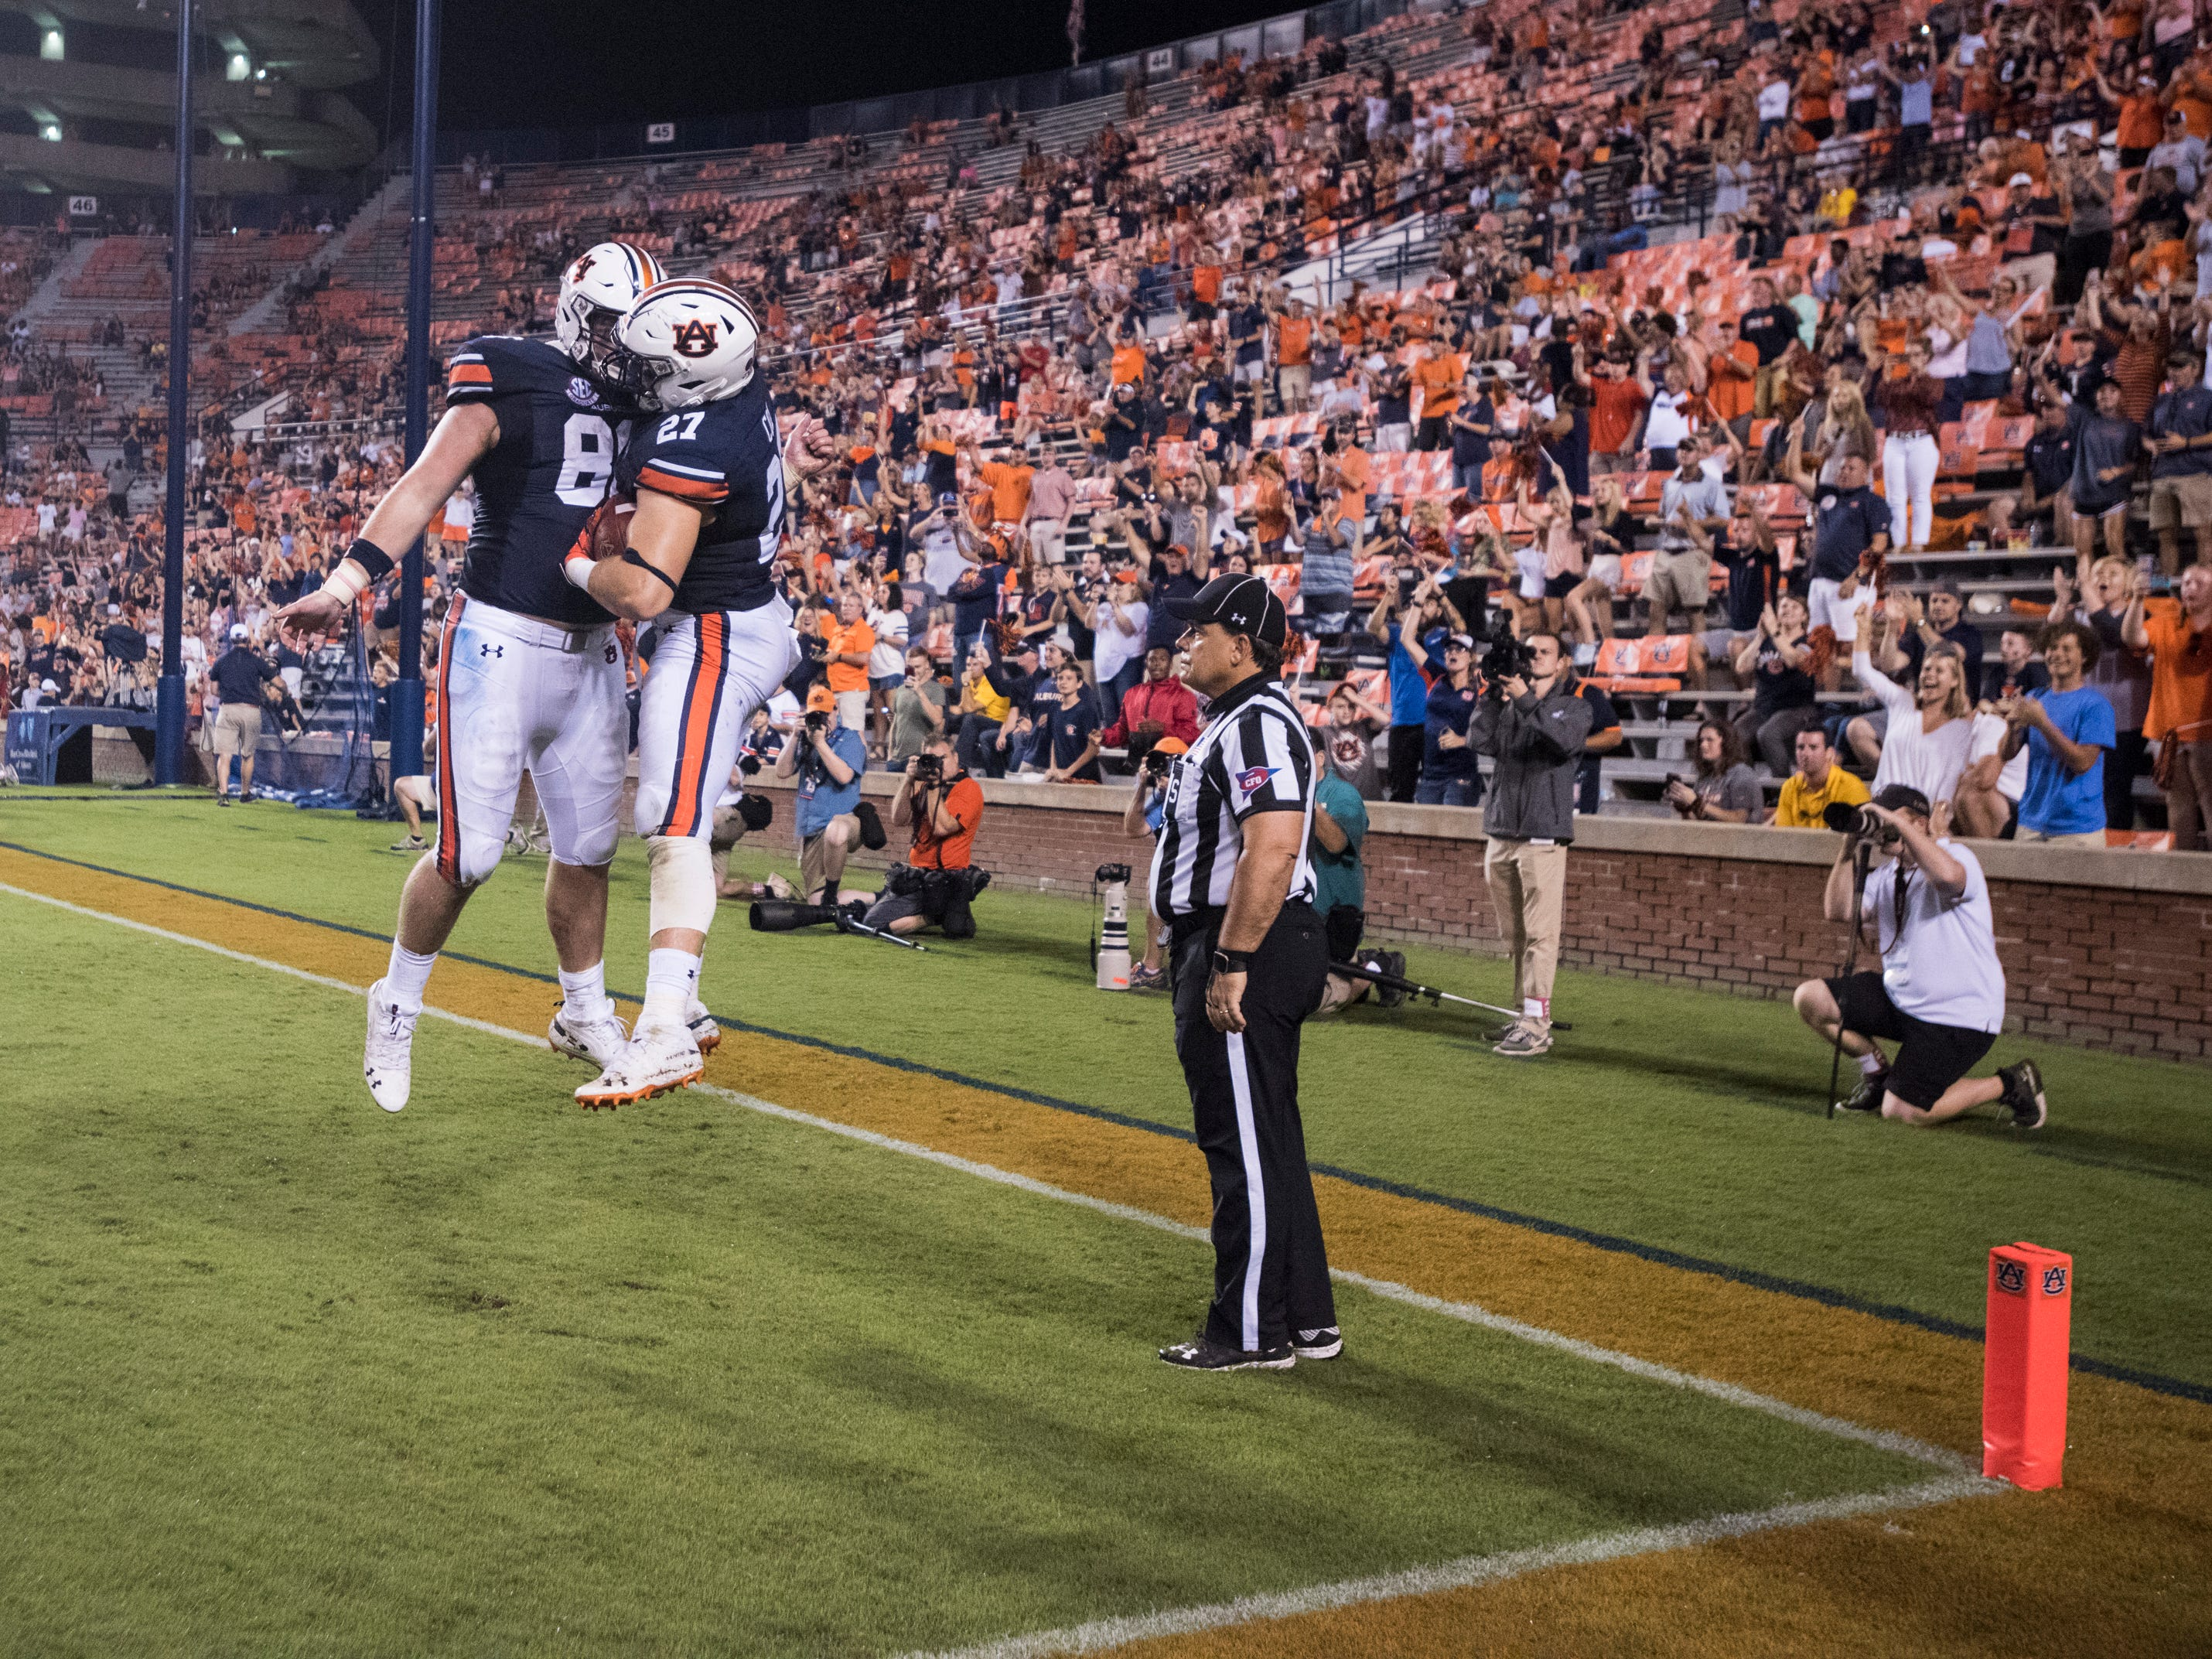 Auburn's Tucker Brown (86) and Chandler Cox (27) react after Cox's touchdown catch at Jordan-Hare Stadium in Auburn, Ala., on Saturday, Sept. 29, 2018. Auburn defeated  Southern Miss 24-13.